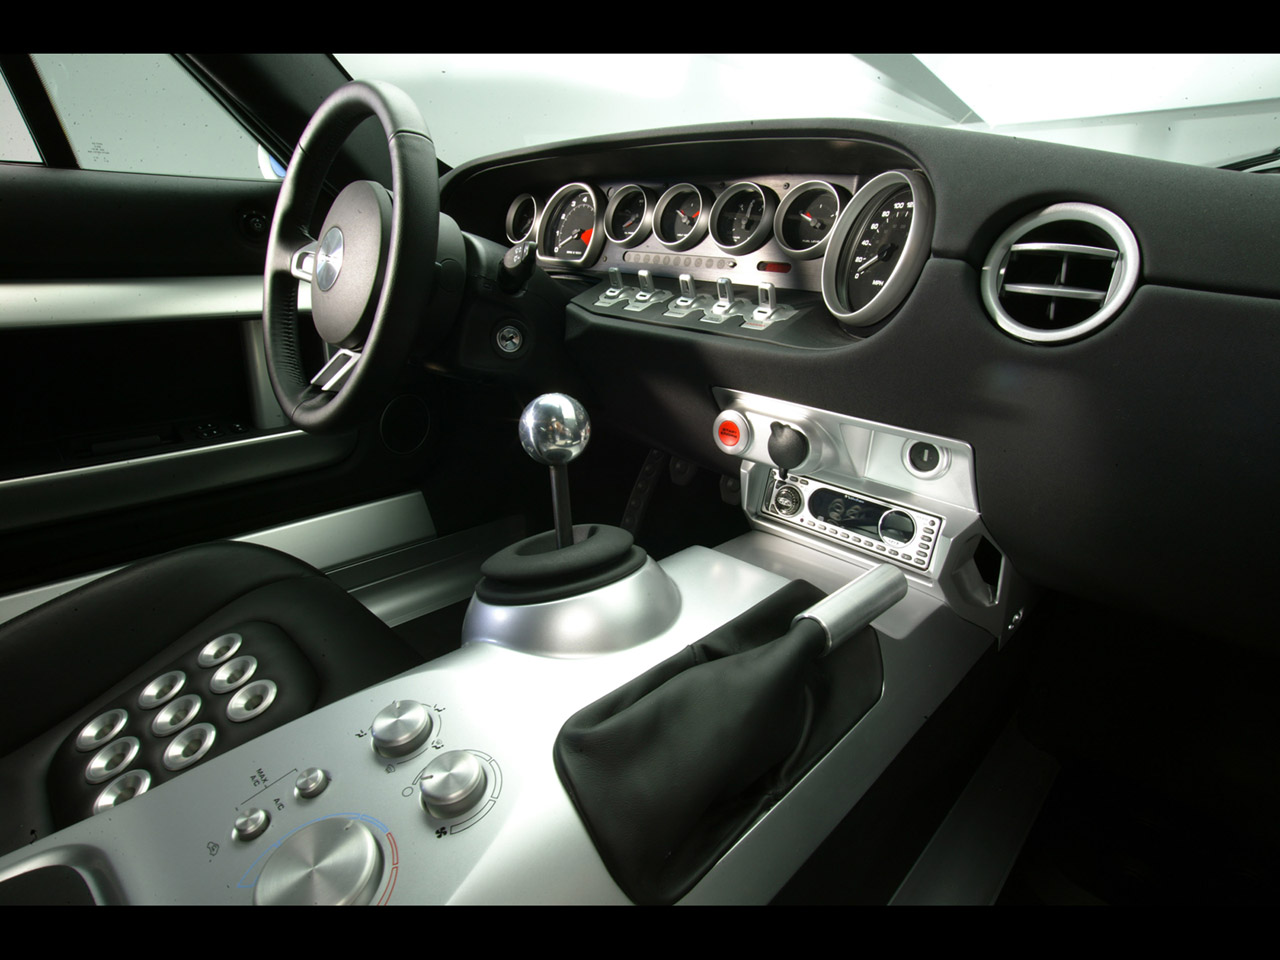 Ford Gt Images Ford Gt Interior Hd Wallpaper And Background Photos